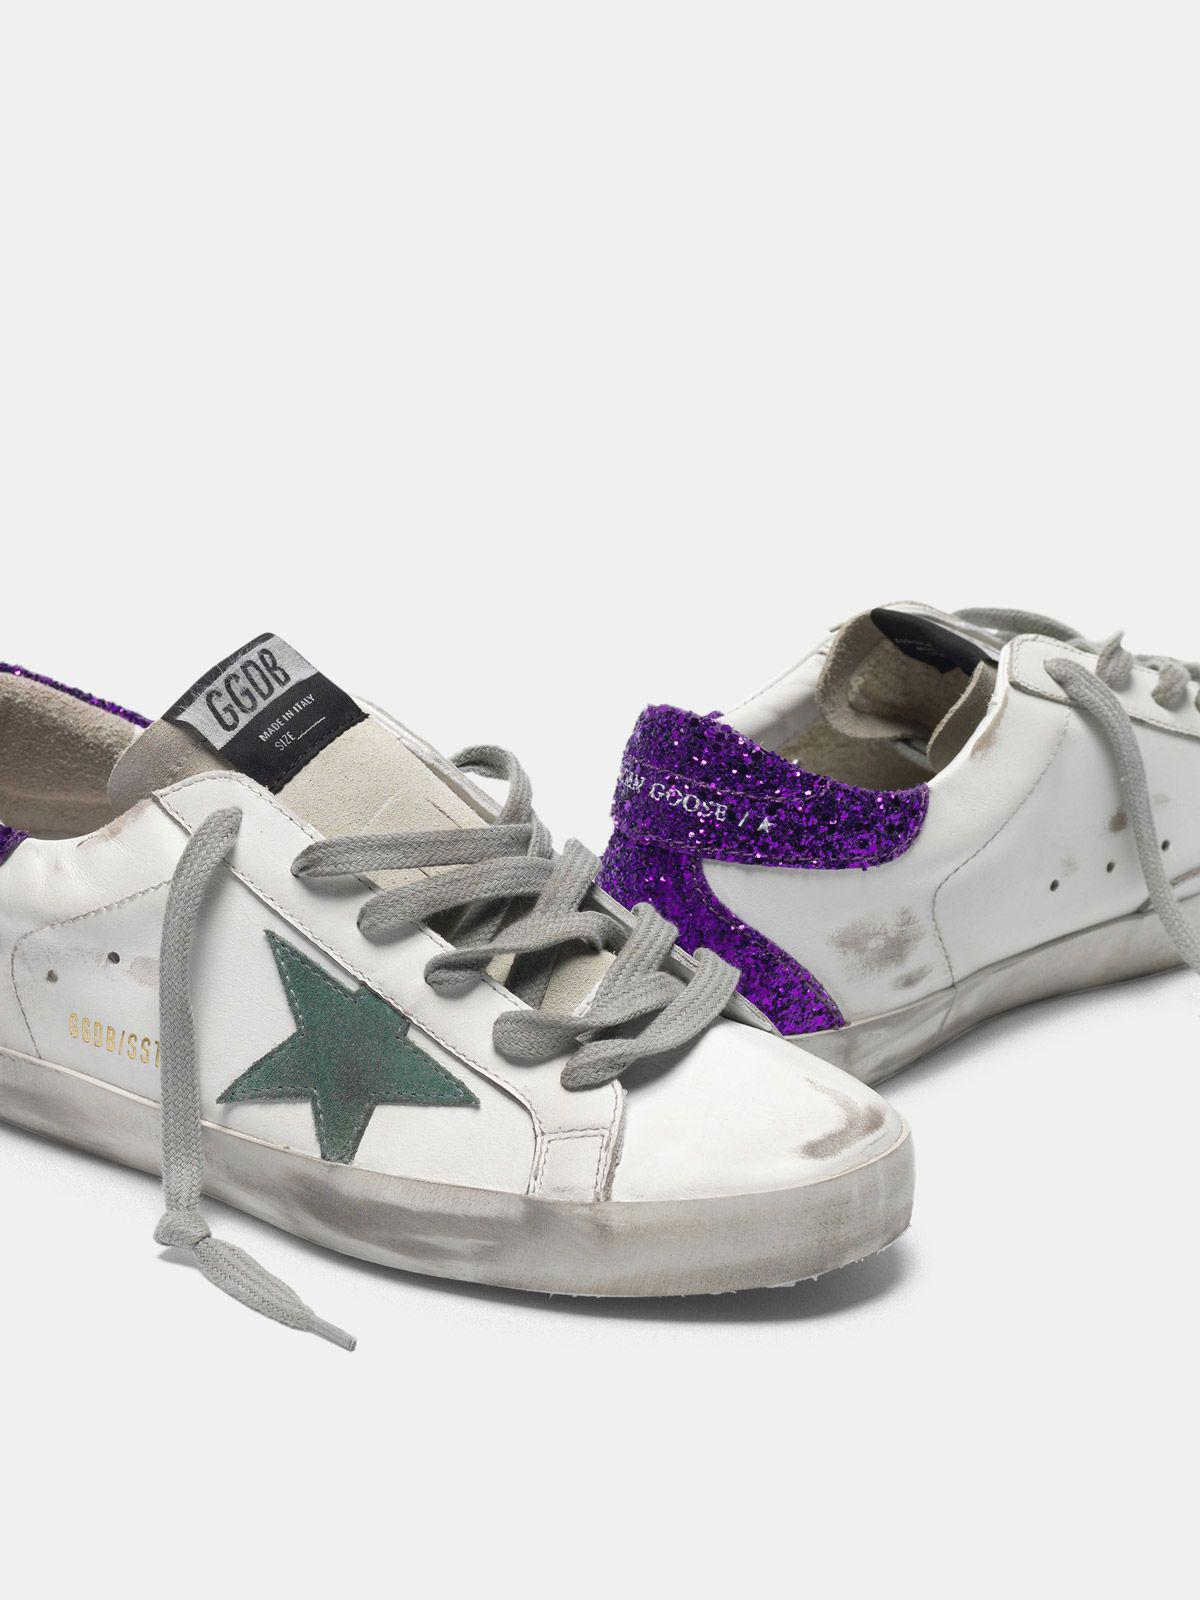 White Super-Star sneakers with glittery purple rear 3